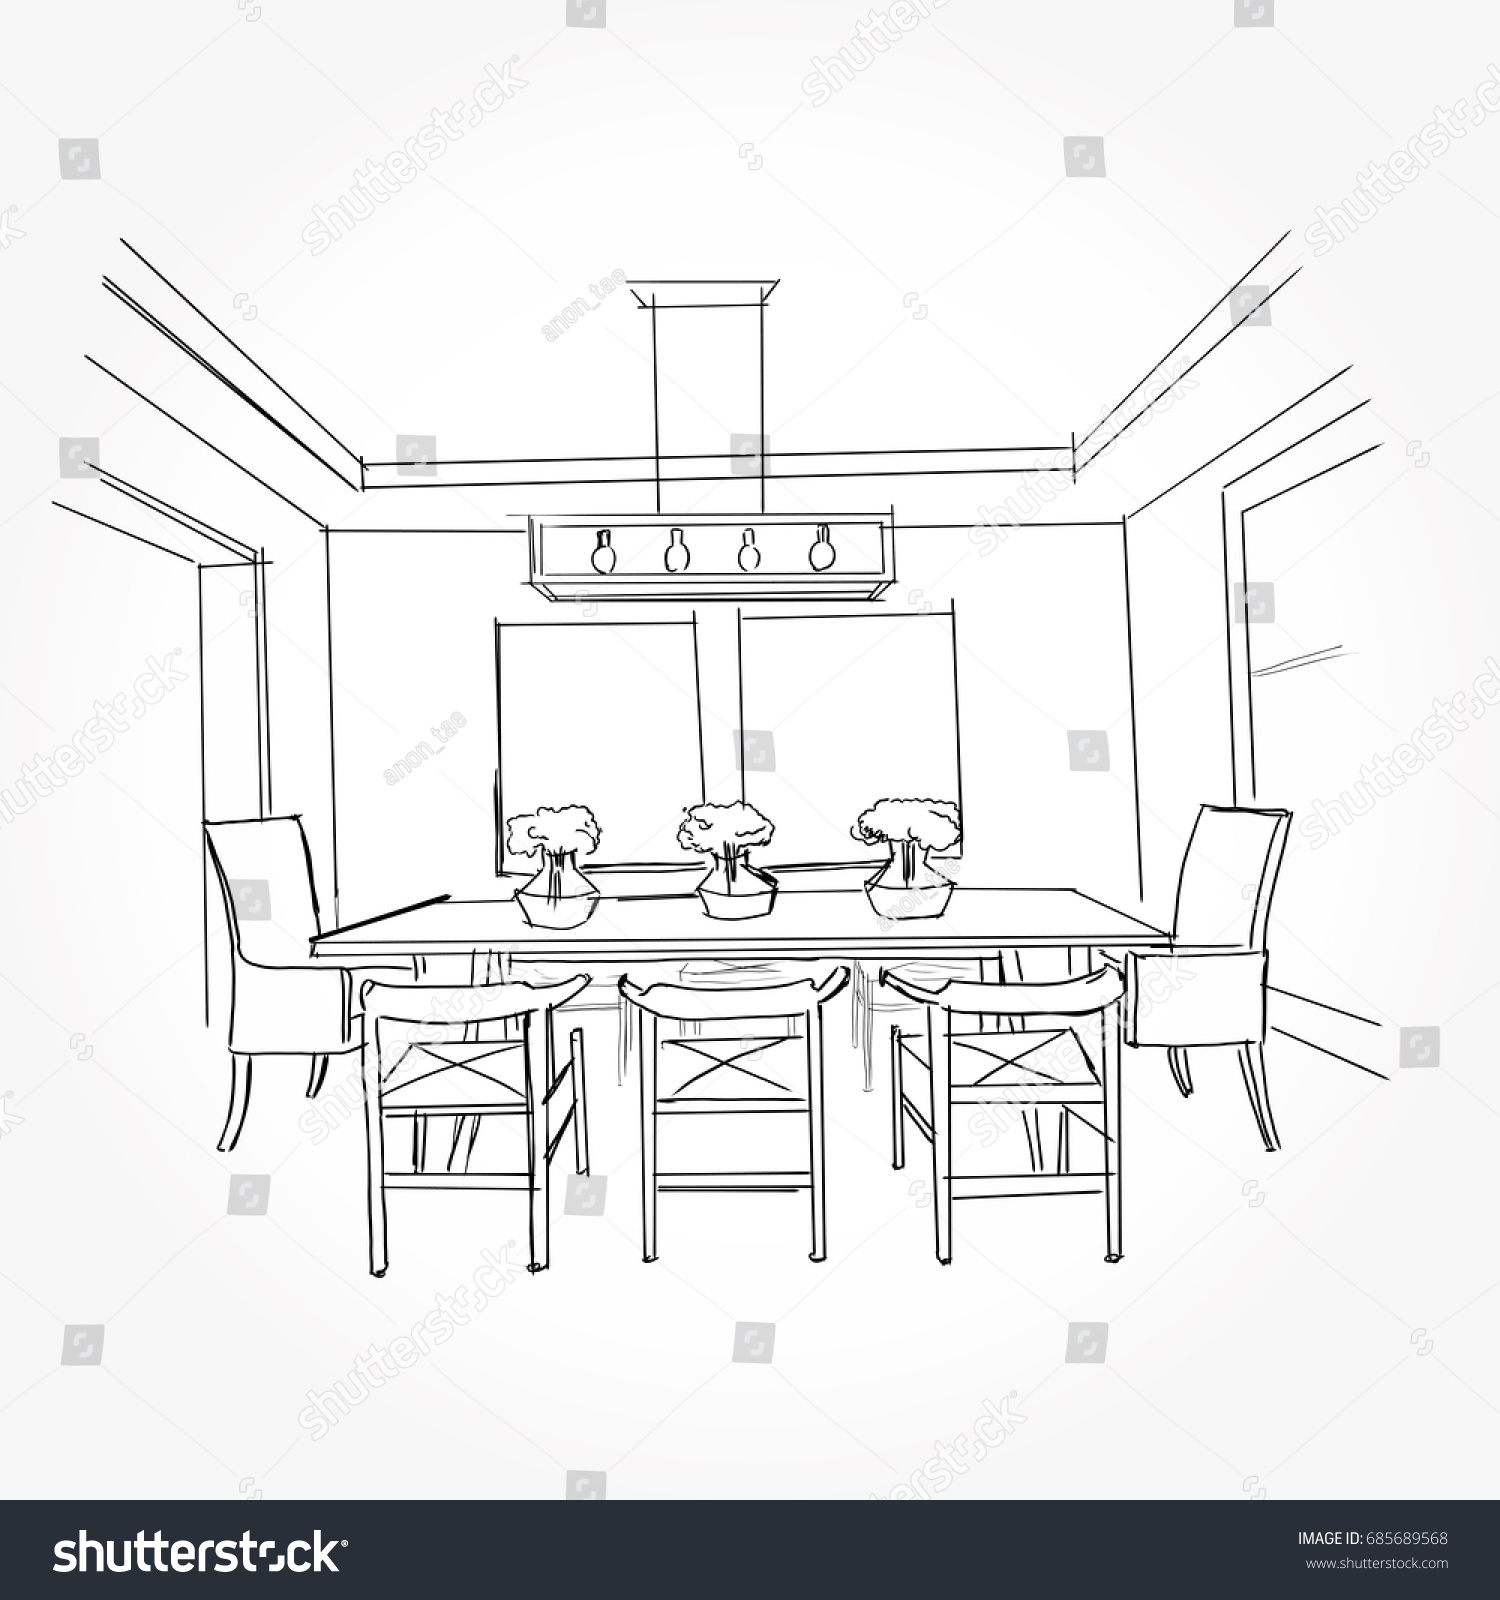 Linear Sketch Interior Sketch Line Dining Stock Vector